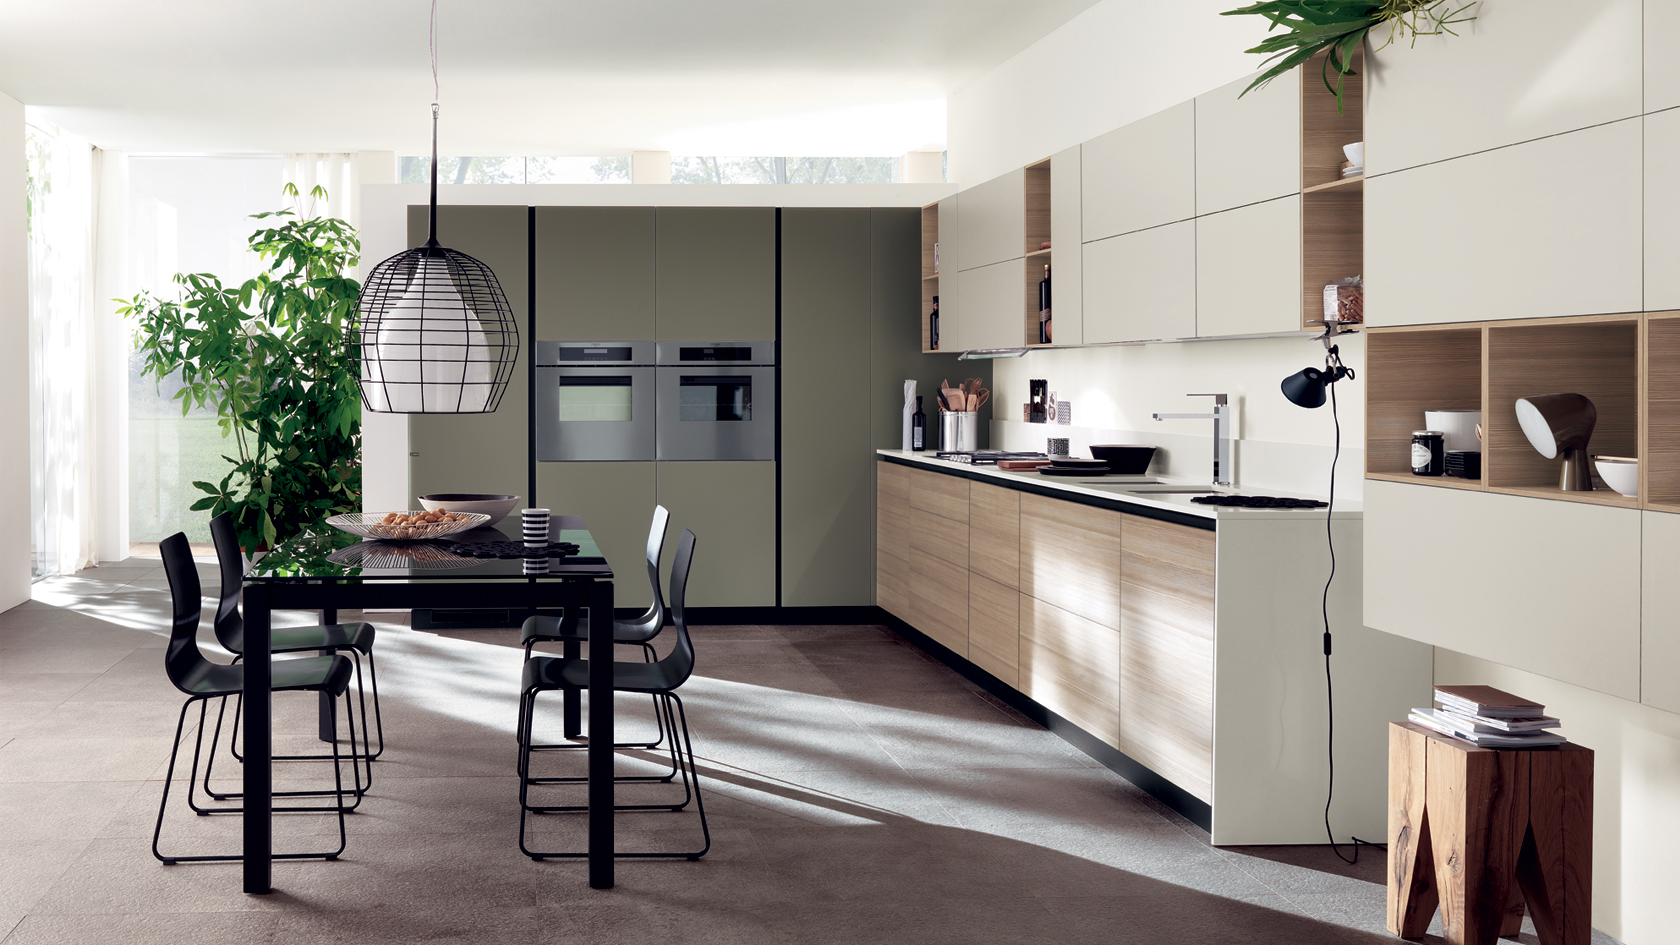 Cucine moderne mobil house mosciano - Tipologie di cucine ...